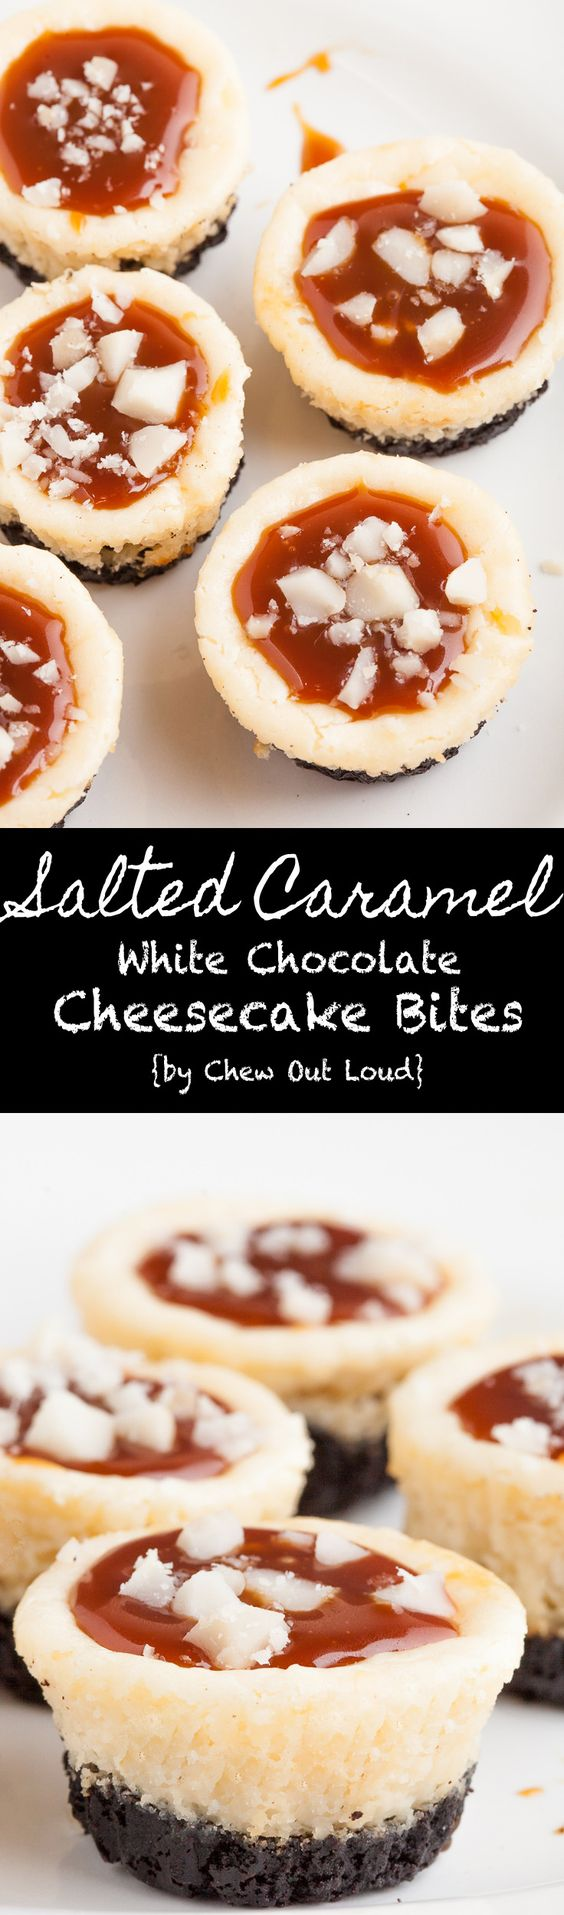 Salted Caramel White Chocolate Cheesecake Bites Individual Servings Dessert Recipe via Chew Out Loud - New York style, dense, rich, smooth, and bite-sized. Perfect holiday dessert recipe.